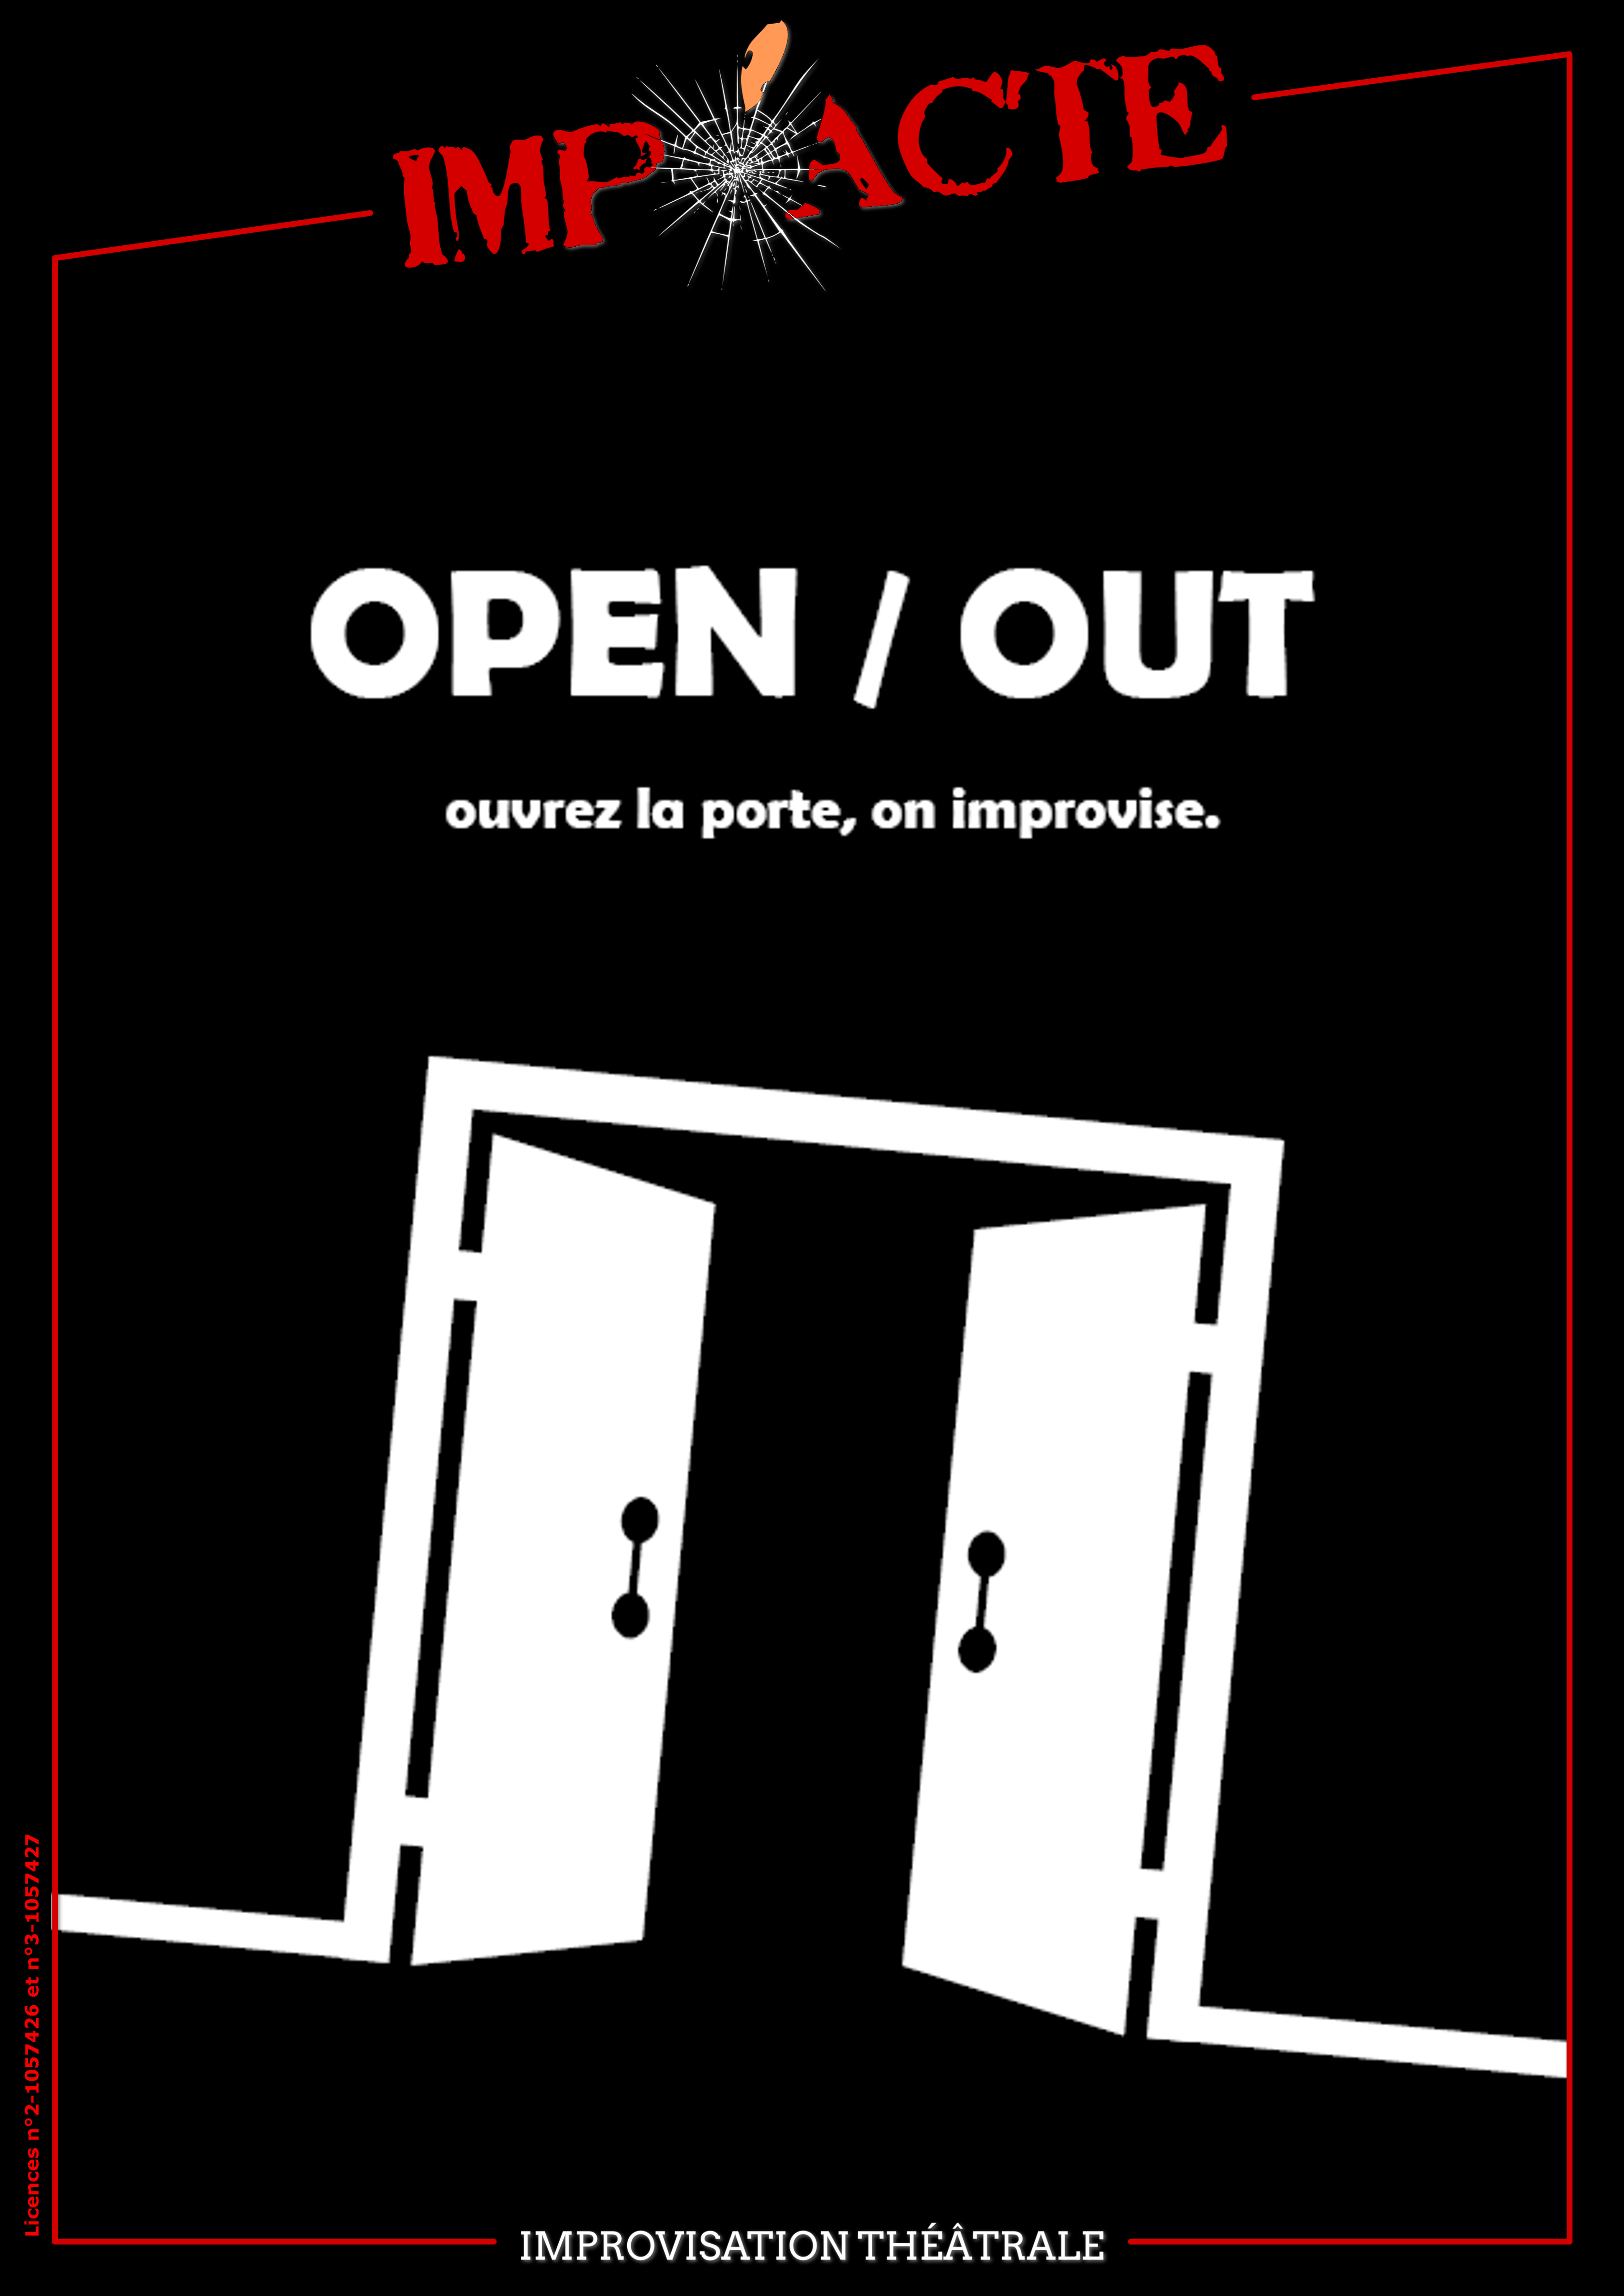 Open / Out image